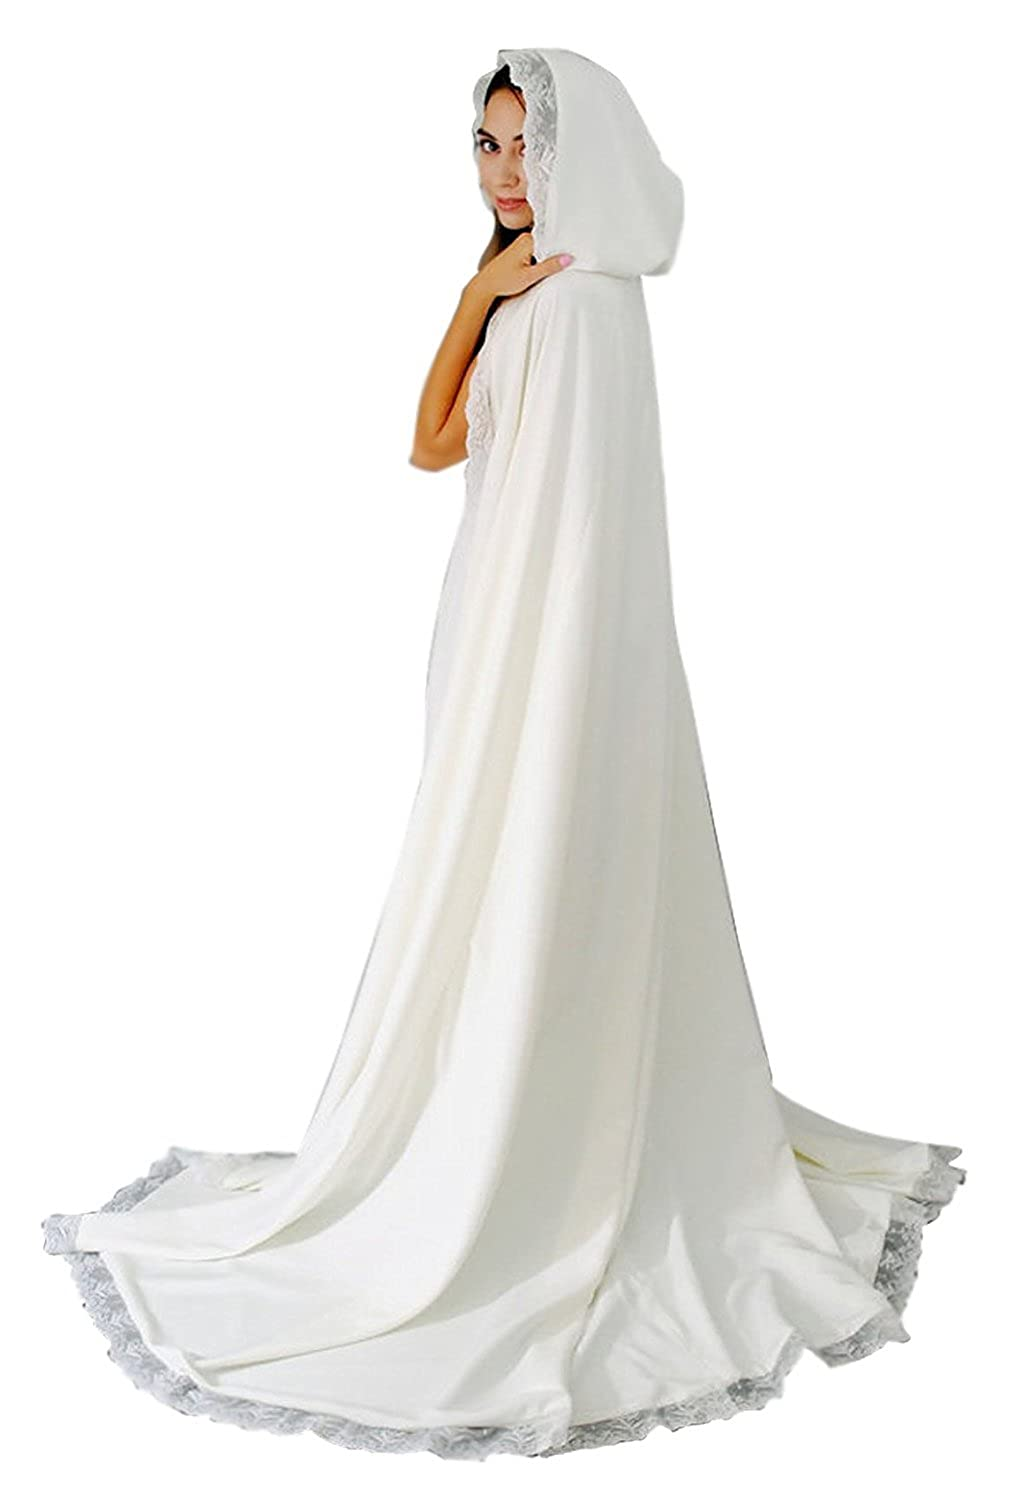 Women's Long Wedding Cape Hooded Cloak for Bride Lace Edge